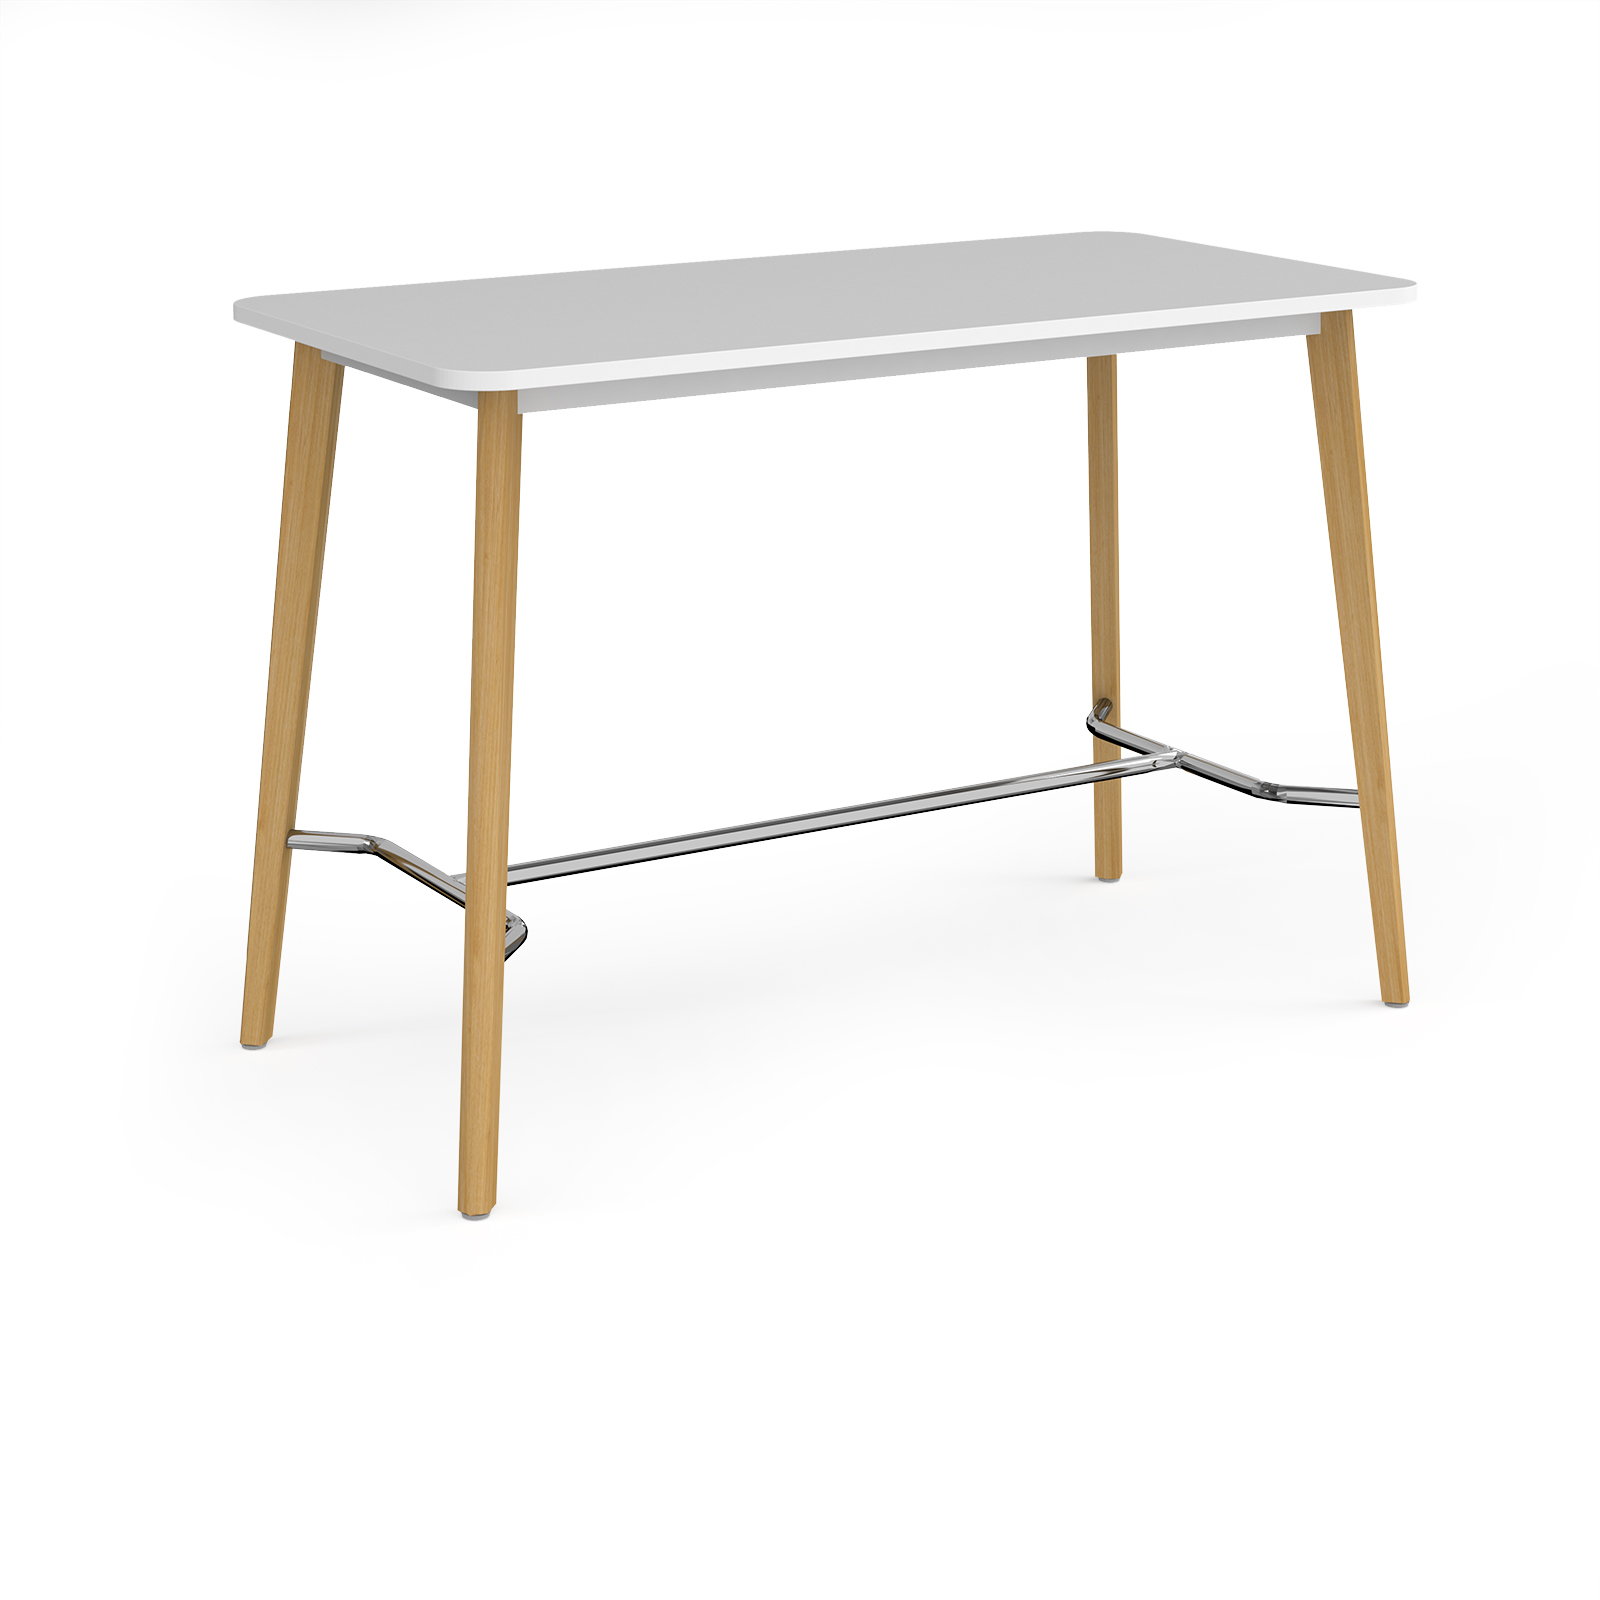 Canteen / Dining Como rectangular poseur table with 4 oak legs 1800mm x 800mm - white